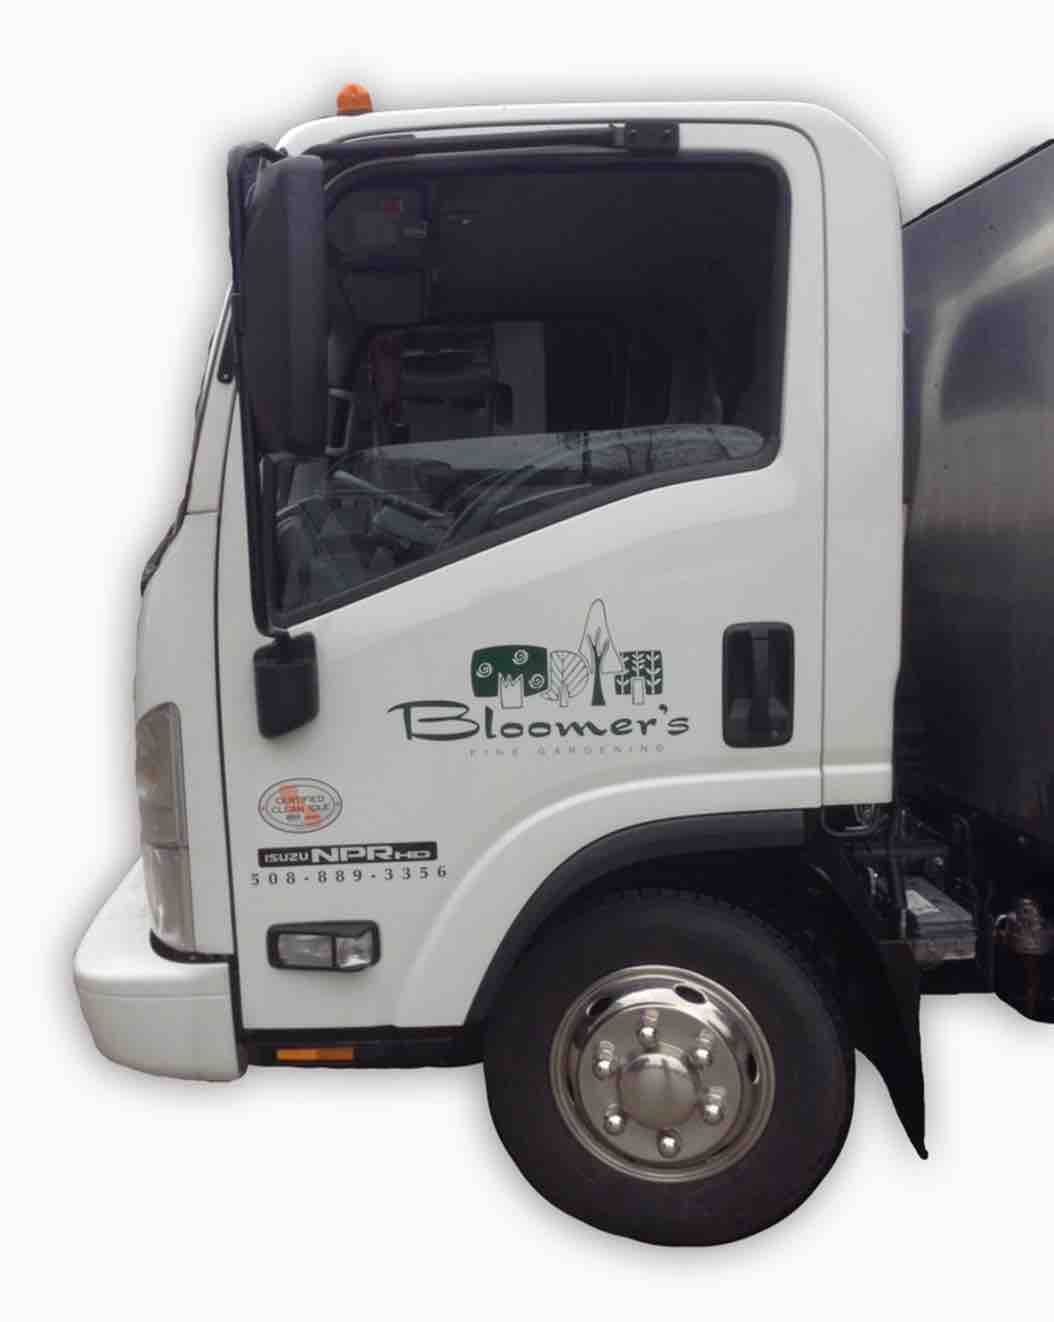 commercial-vehicle-graphics13.jpeg